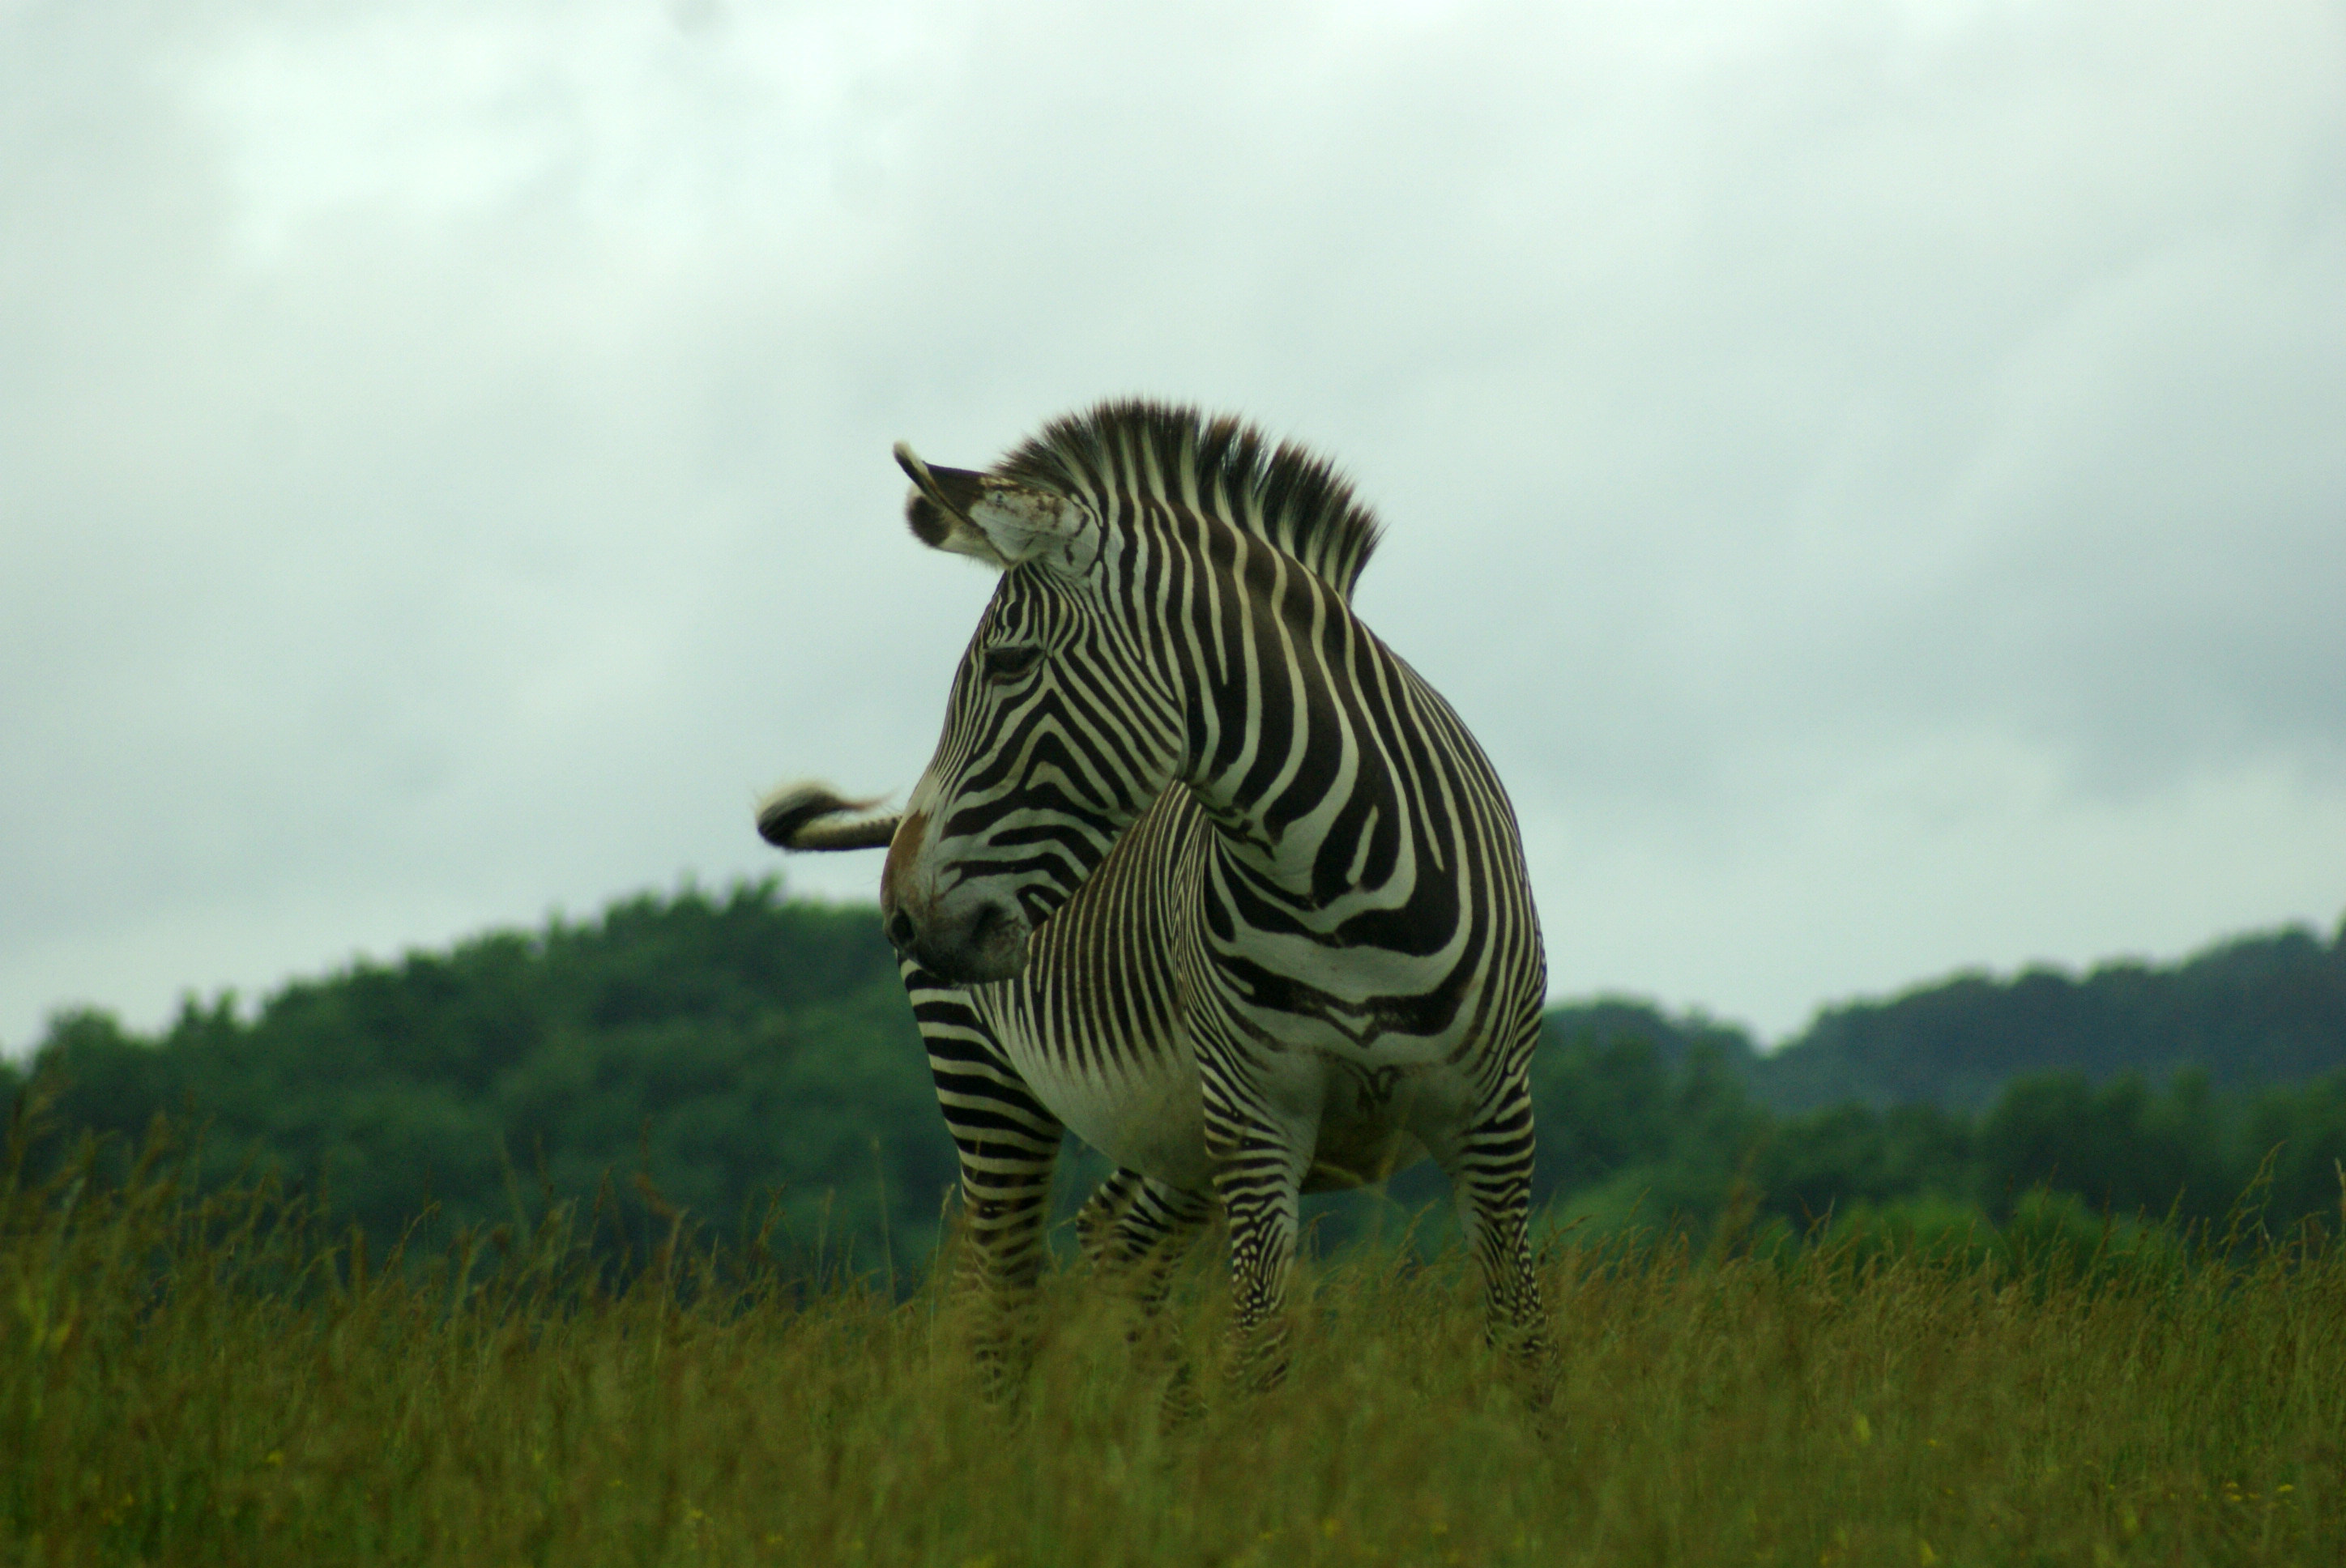 A Grevy's zebra roams on June 6, 2015 at The Wilds, a non-profit safari park and conservation center in Cumberland, Ohio. Less than 3,000 Grevy's zebras remain in the wild.